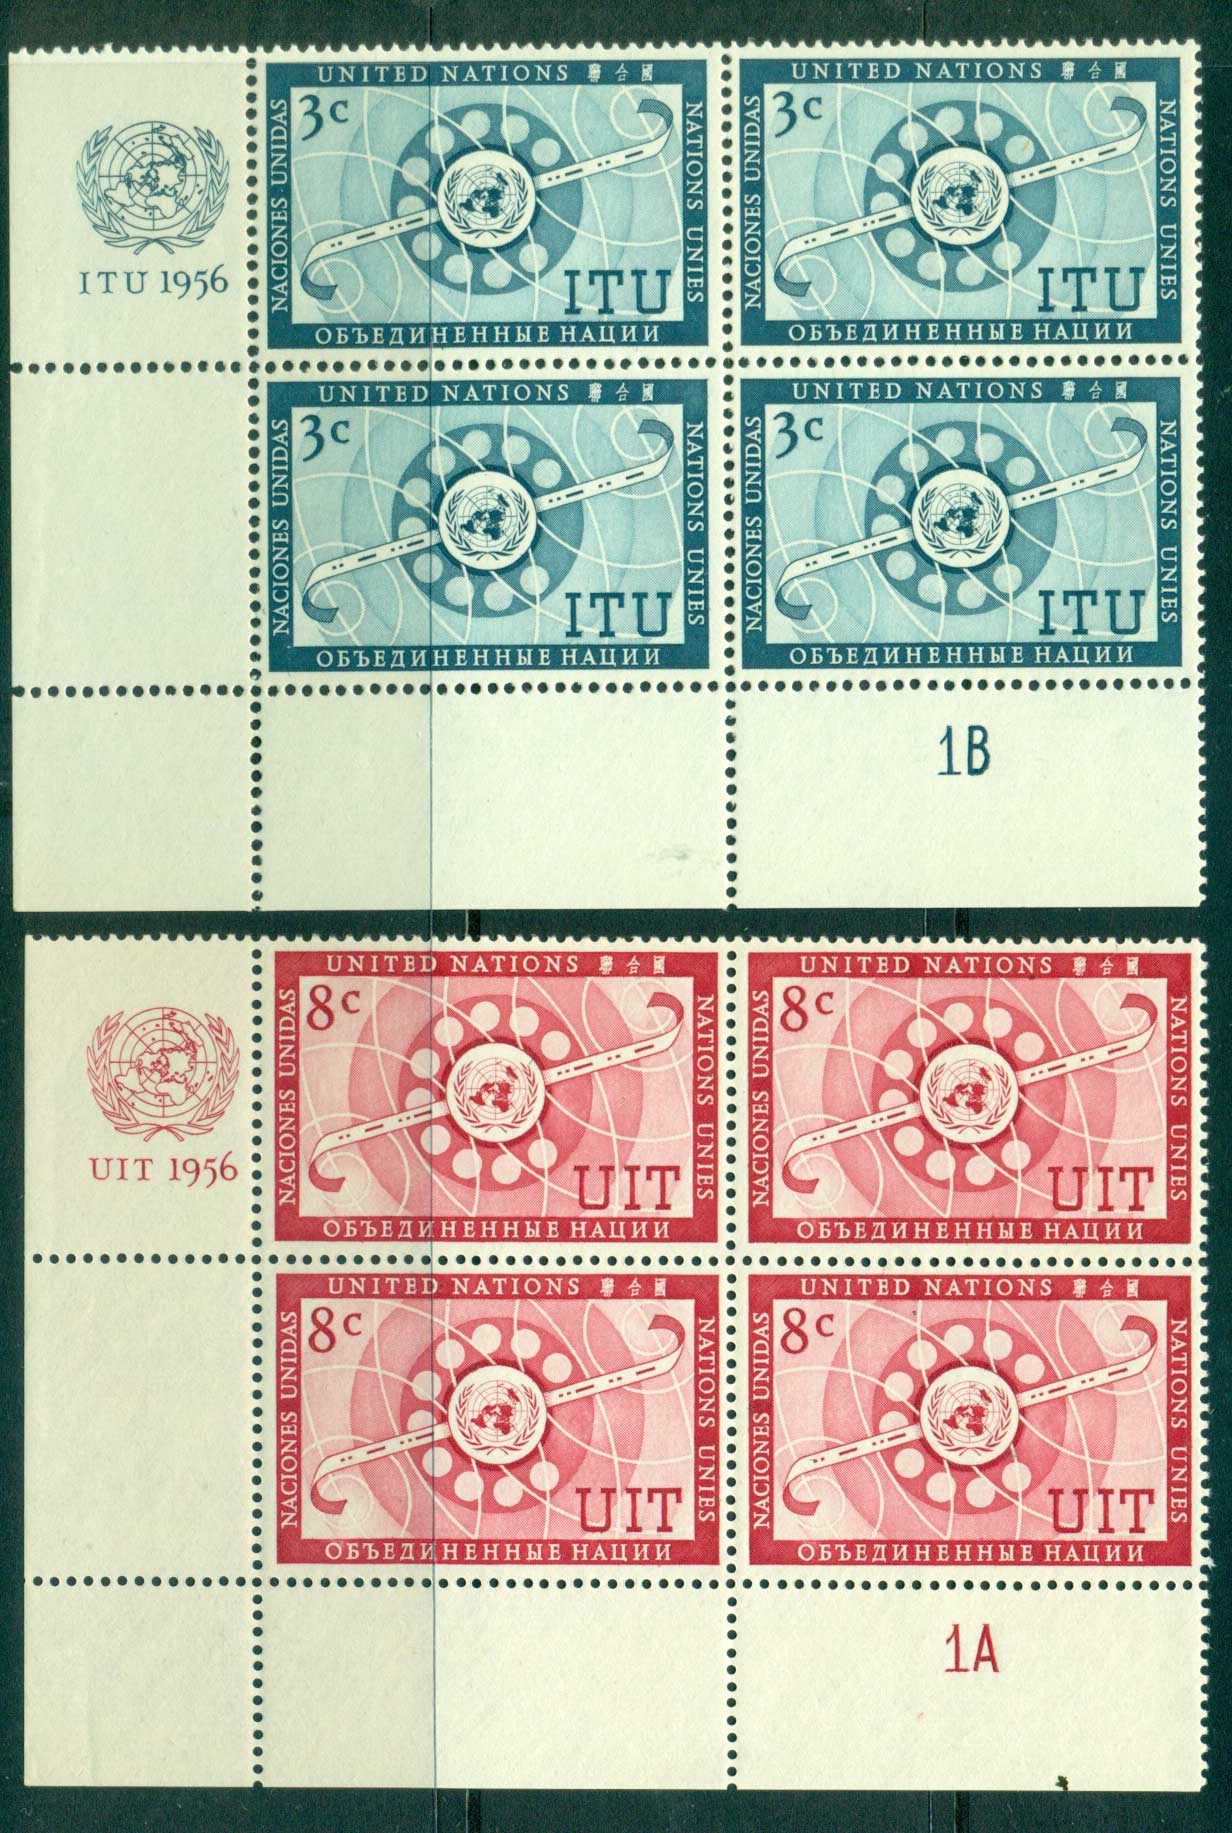 UN New York 1956 Honouring the ITU Plate # Imprint Blk 4 MUH lot40882